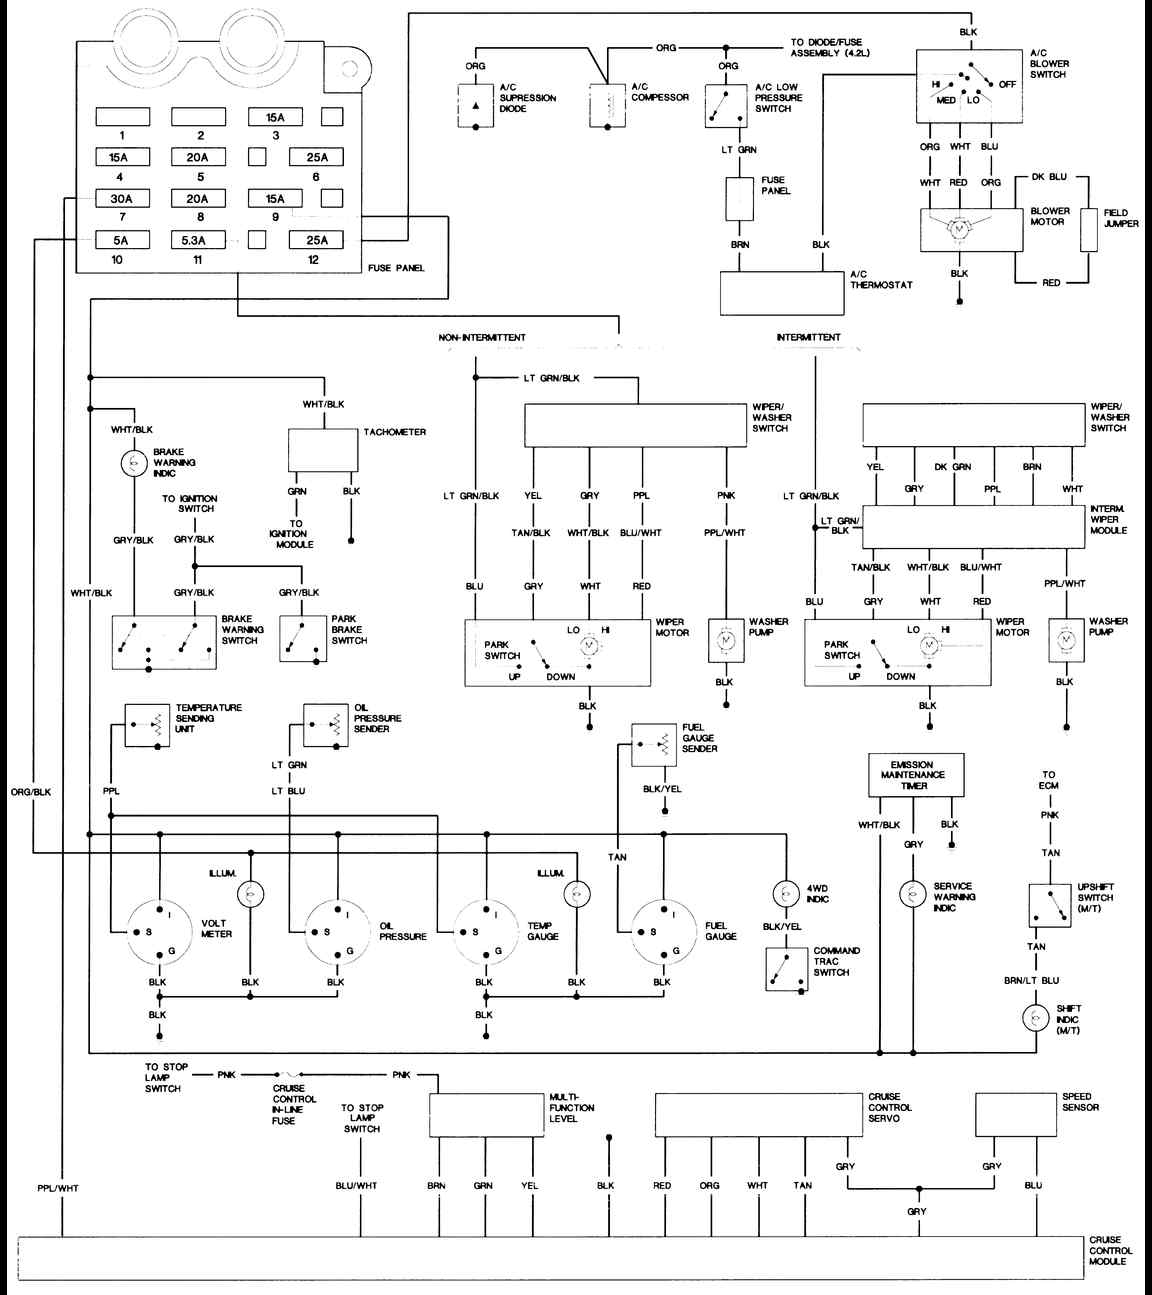 1988 jeep wrangler engine wiring diagram trusted wiring diagram u2022 rh soulmatestyle co